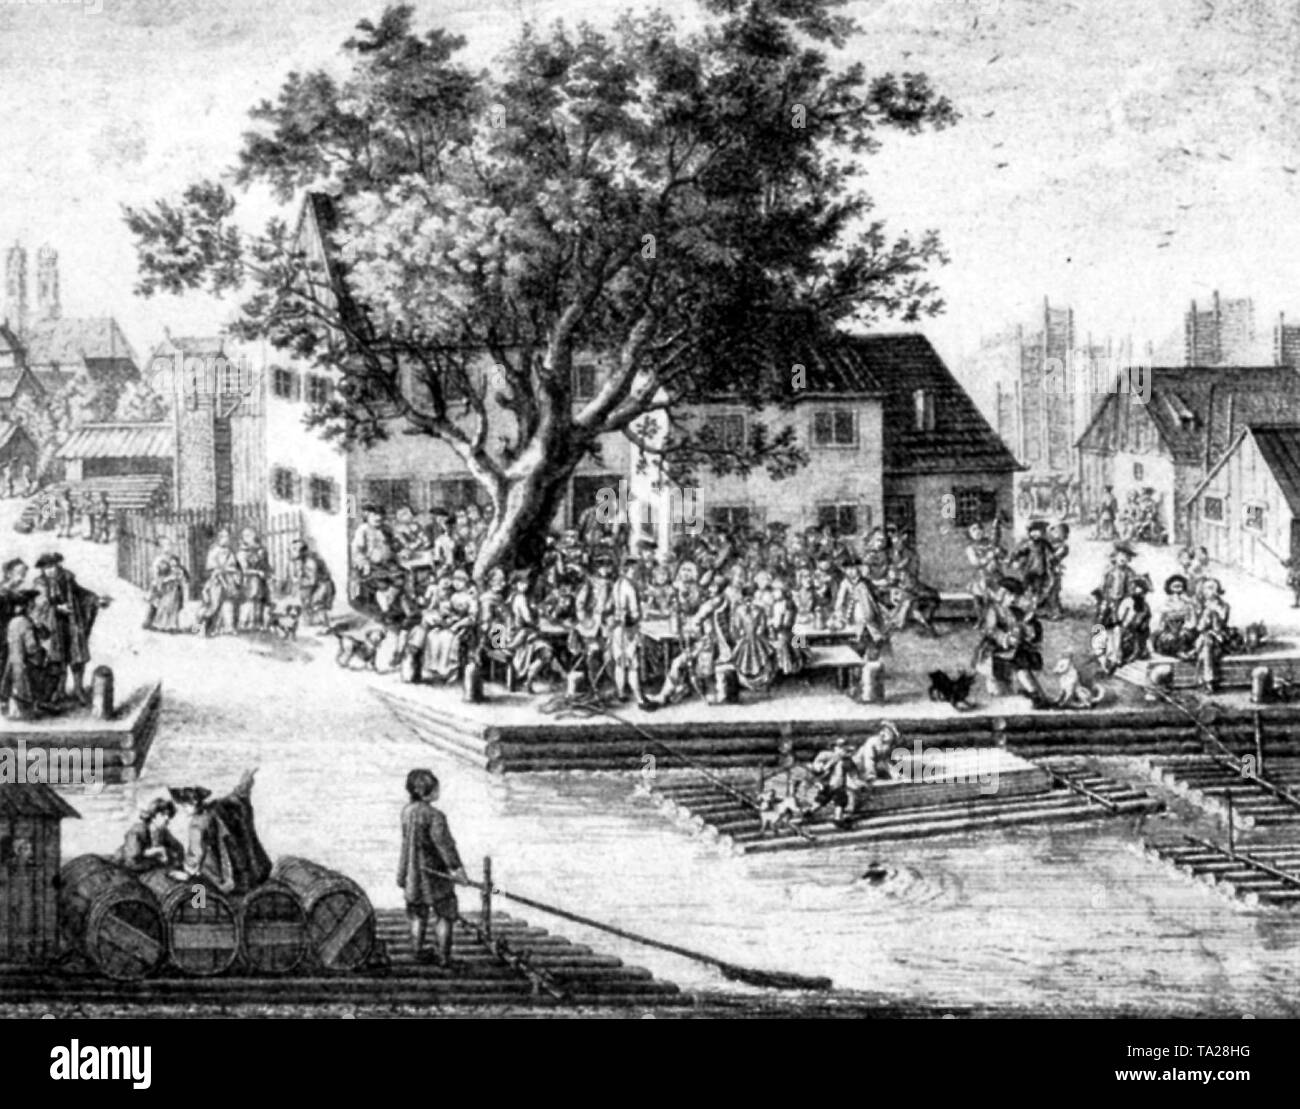 The restaurant 'Gruener Baum' (Green Tree) on the Isar in Munich. Engraving from 1767. - Stock Image